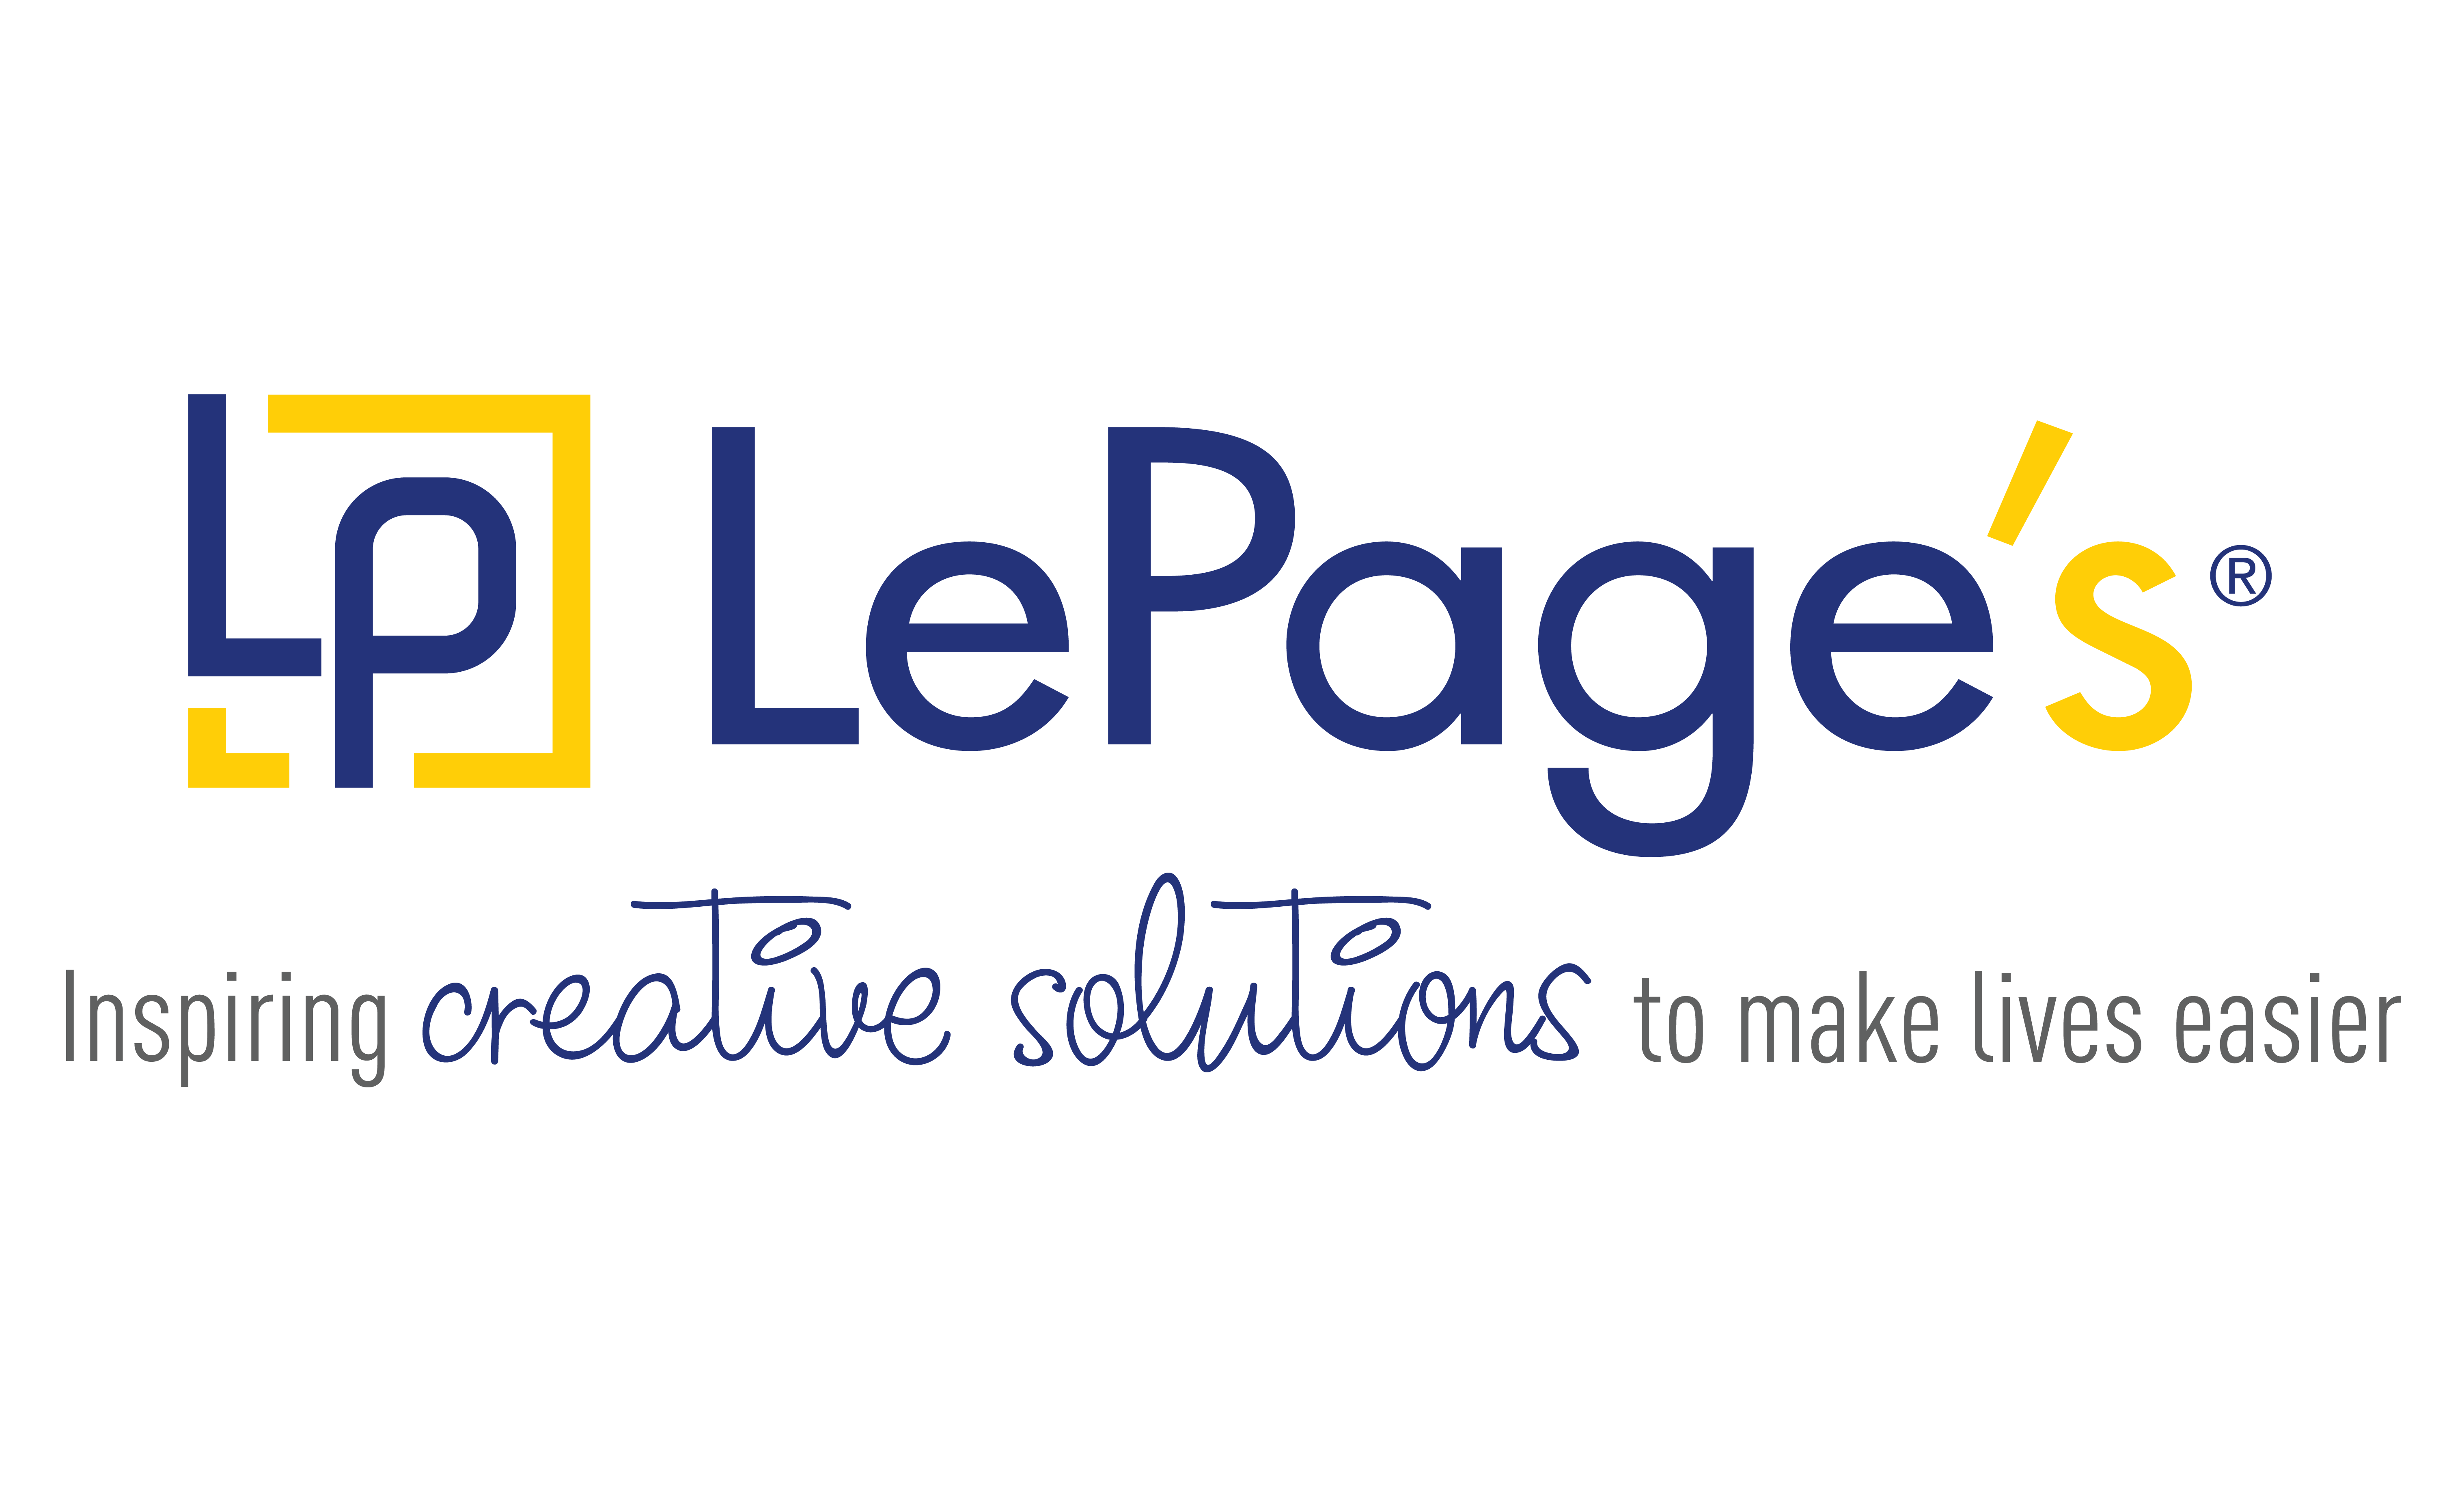 Lepages